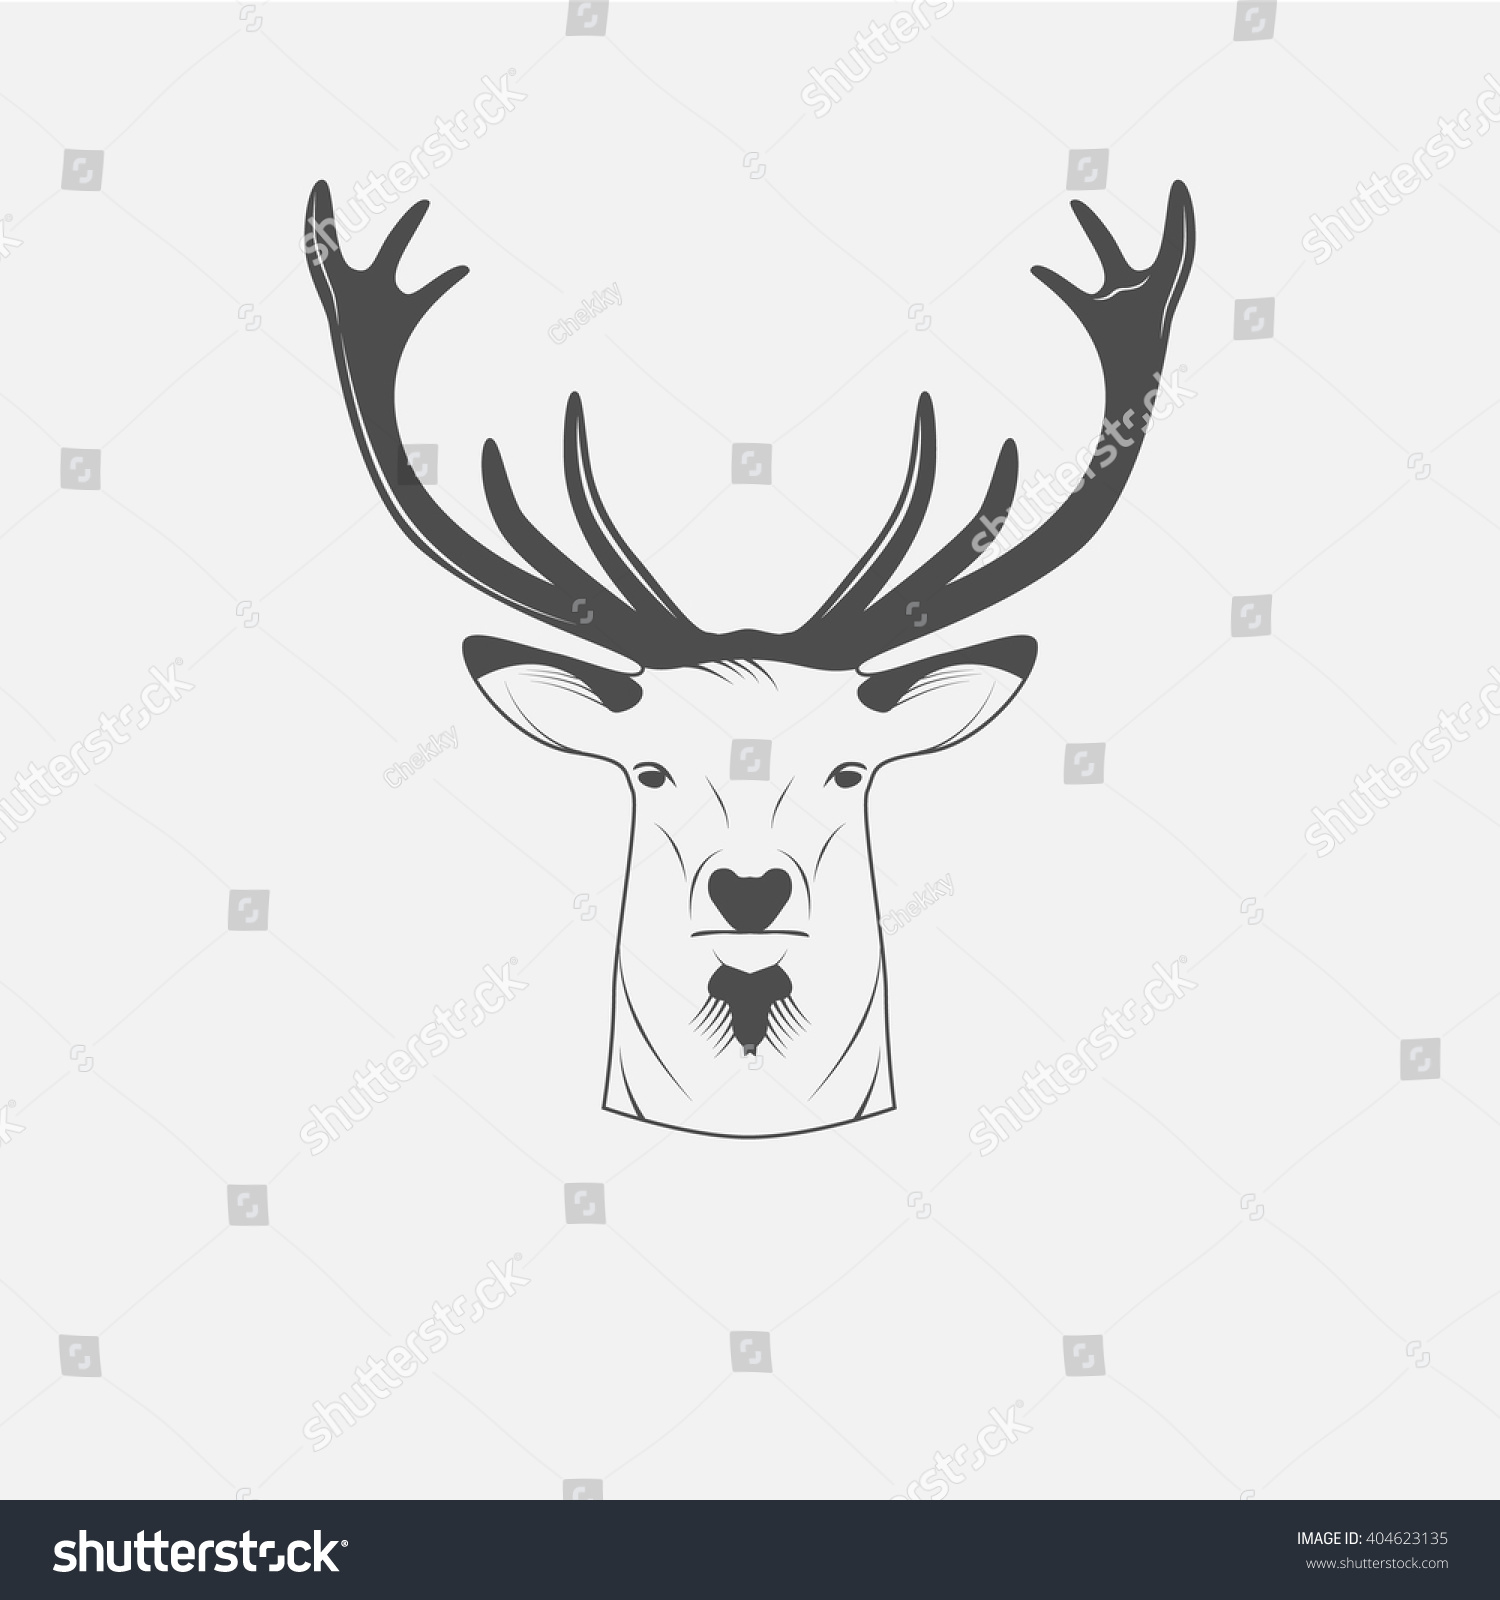 Deer illustration black and white - photo#7